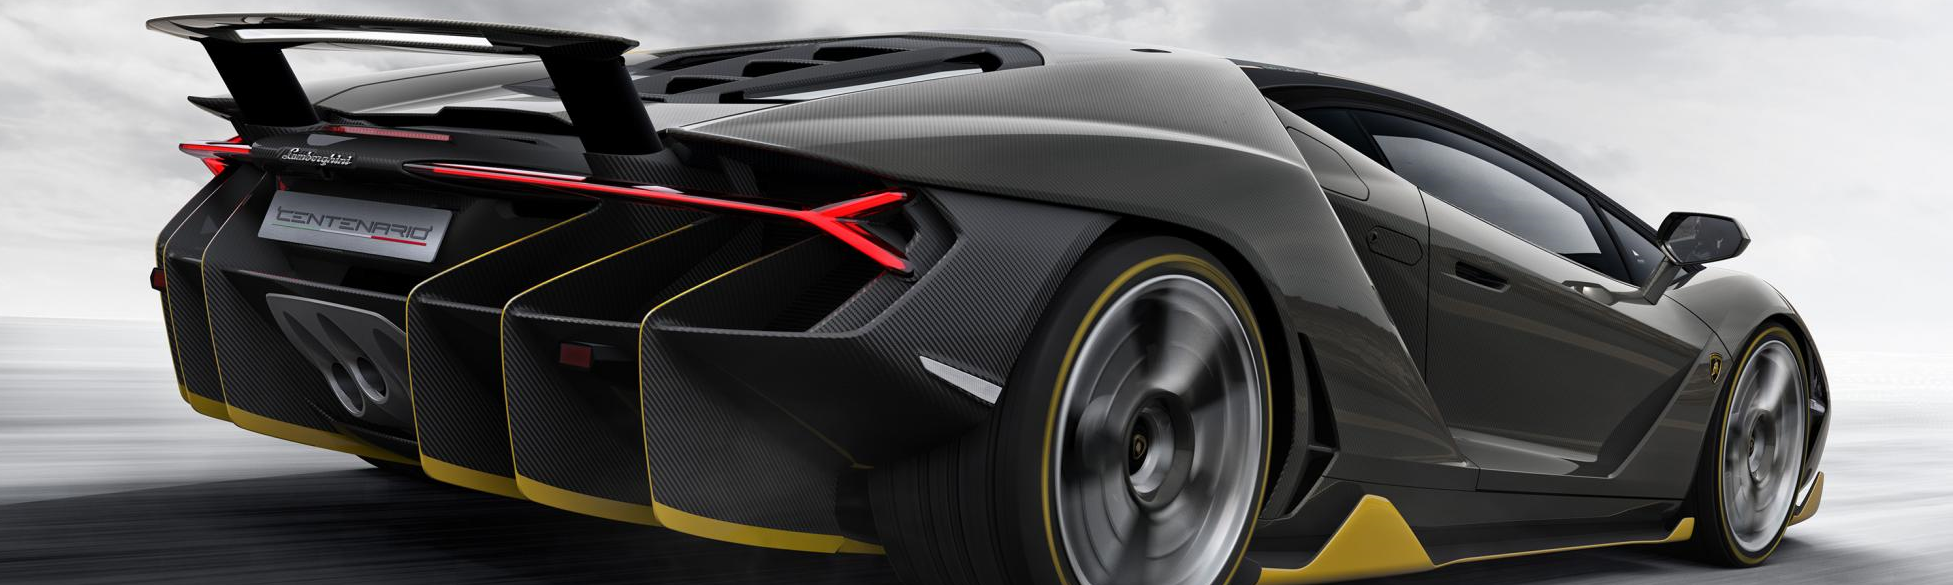 The Lamborghini Centenario is a limited edition supercar made to celebrate the 100th birthday of Ferruccio Lamborghini that has been designed from the platform of the Lamborghini Aventador. 20 hardtop and 20 convertible units will be made with each example costing just north of $2 million. All 40 units of the Lamborghini Centenario were sold before the vehicle made its public debut at the Geneva Motor Show back in March. The chances of ever being able to see a Lamborghini Centenario up close and in person are almost nonexistent due to the exclusivity of this amazing car. For all of us mere mortals who do not have an extra $2 million laying around to blow on a Lamborghini Centenario will now be able to pilot this limited edition Raging Bull in a very fast and reckless fashion while playing Forza Horizon 3.